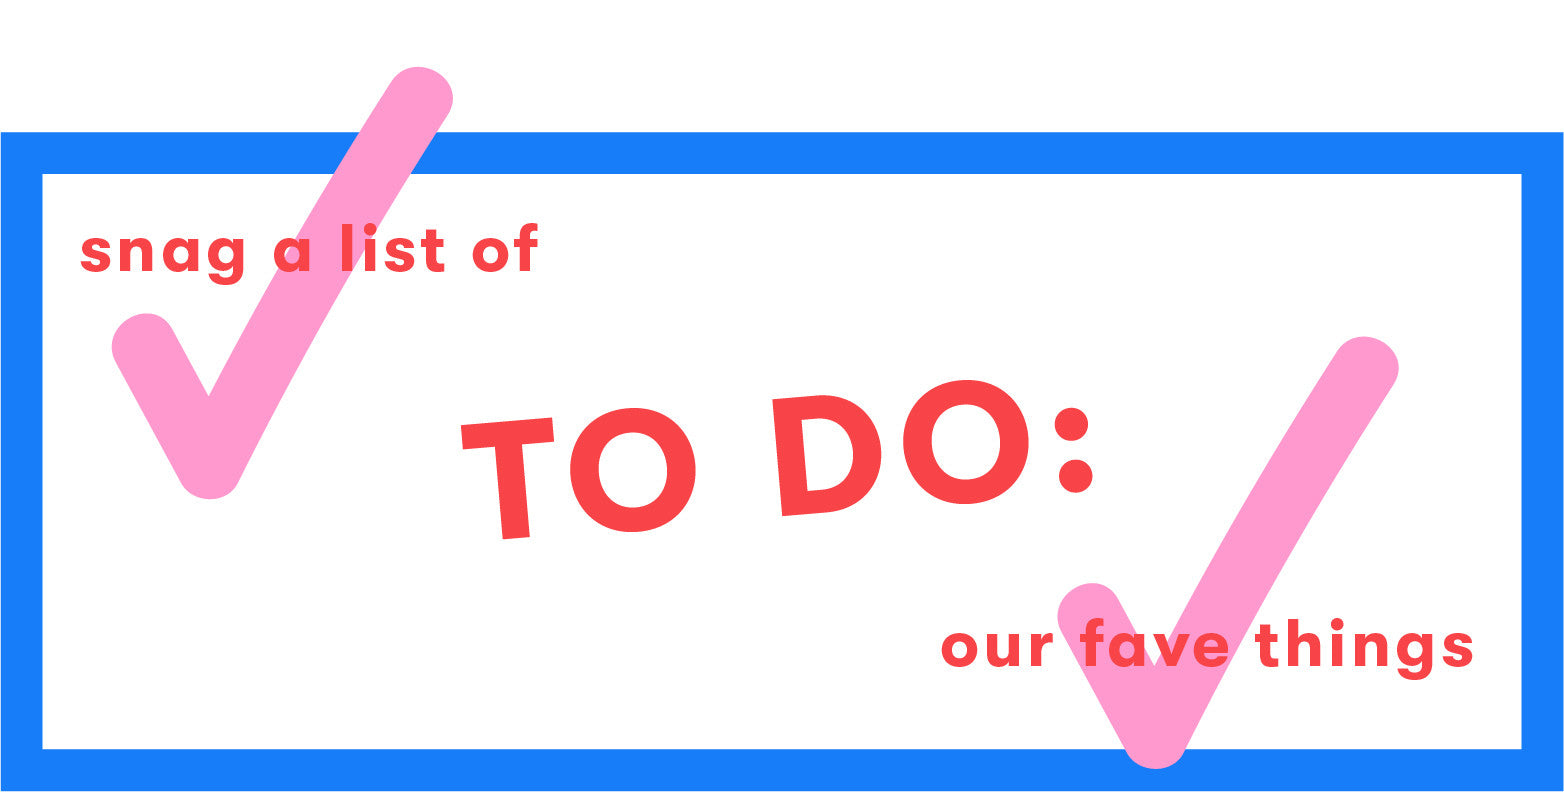 to do: snag a list of our fave things